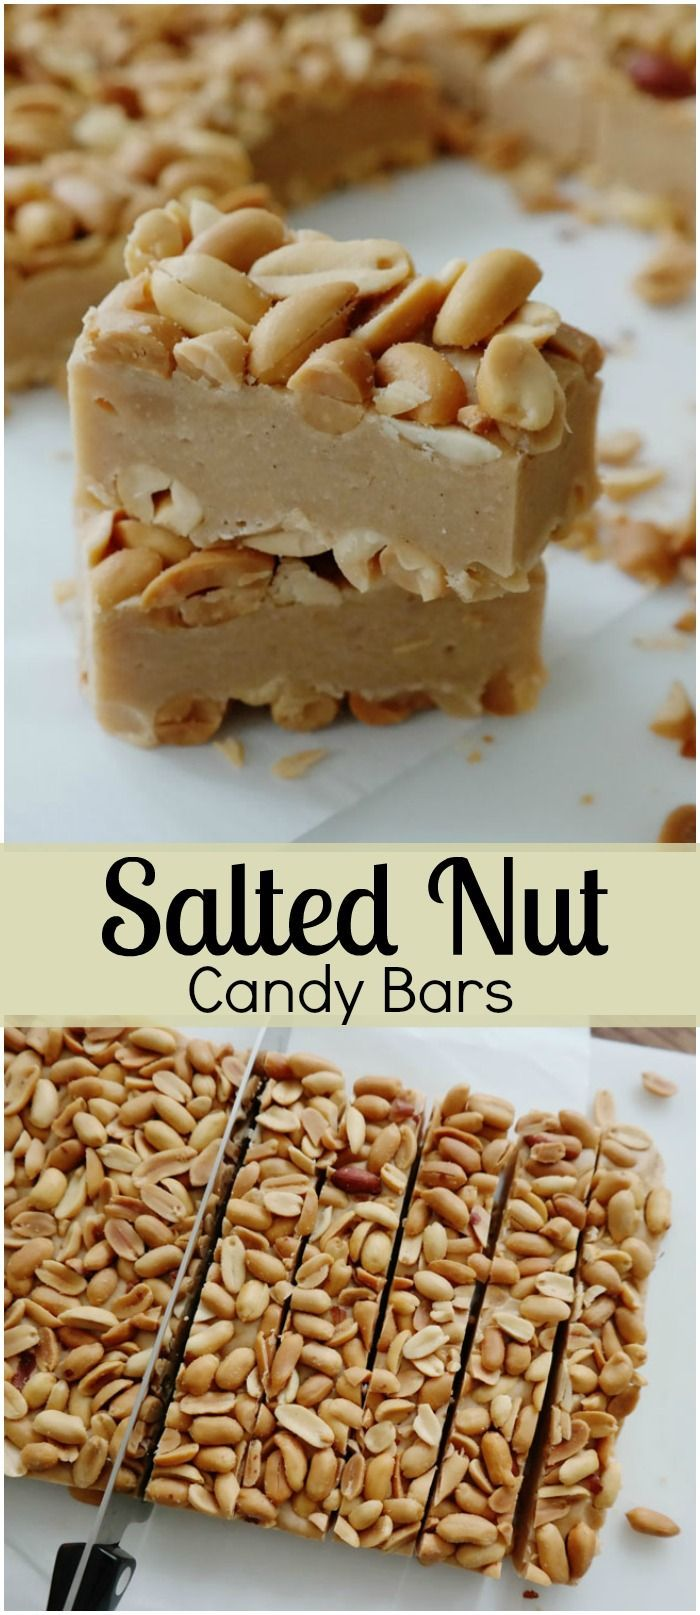 Salted Nut Candy Bars-you'll love the sweet, salty combination of these candy bars, just a few ingredients, no-bake and they make a great gift for the holidays!